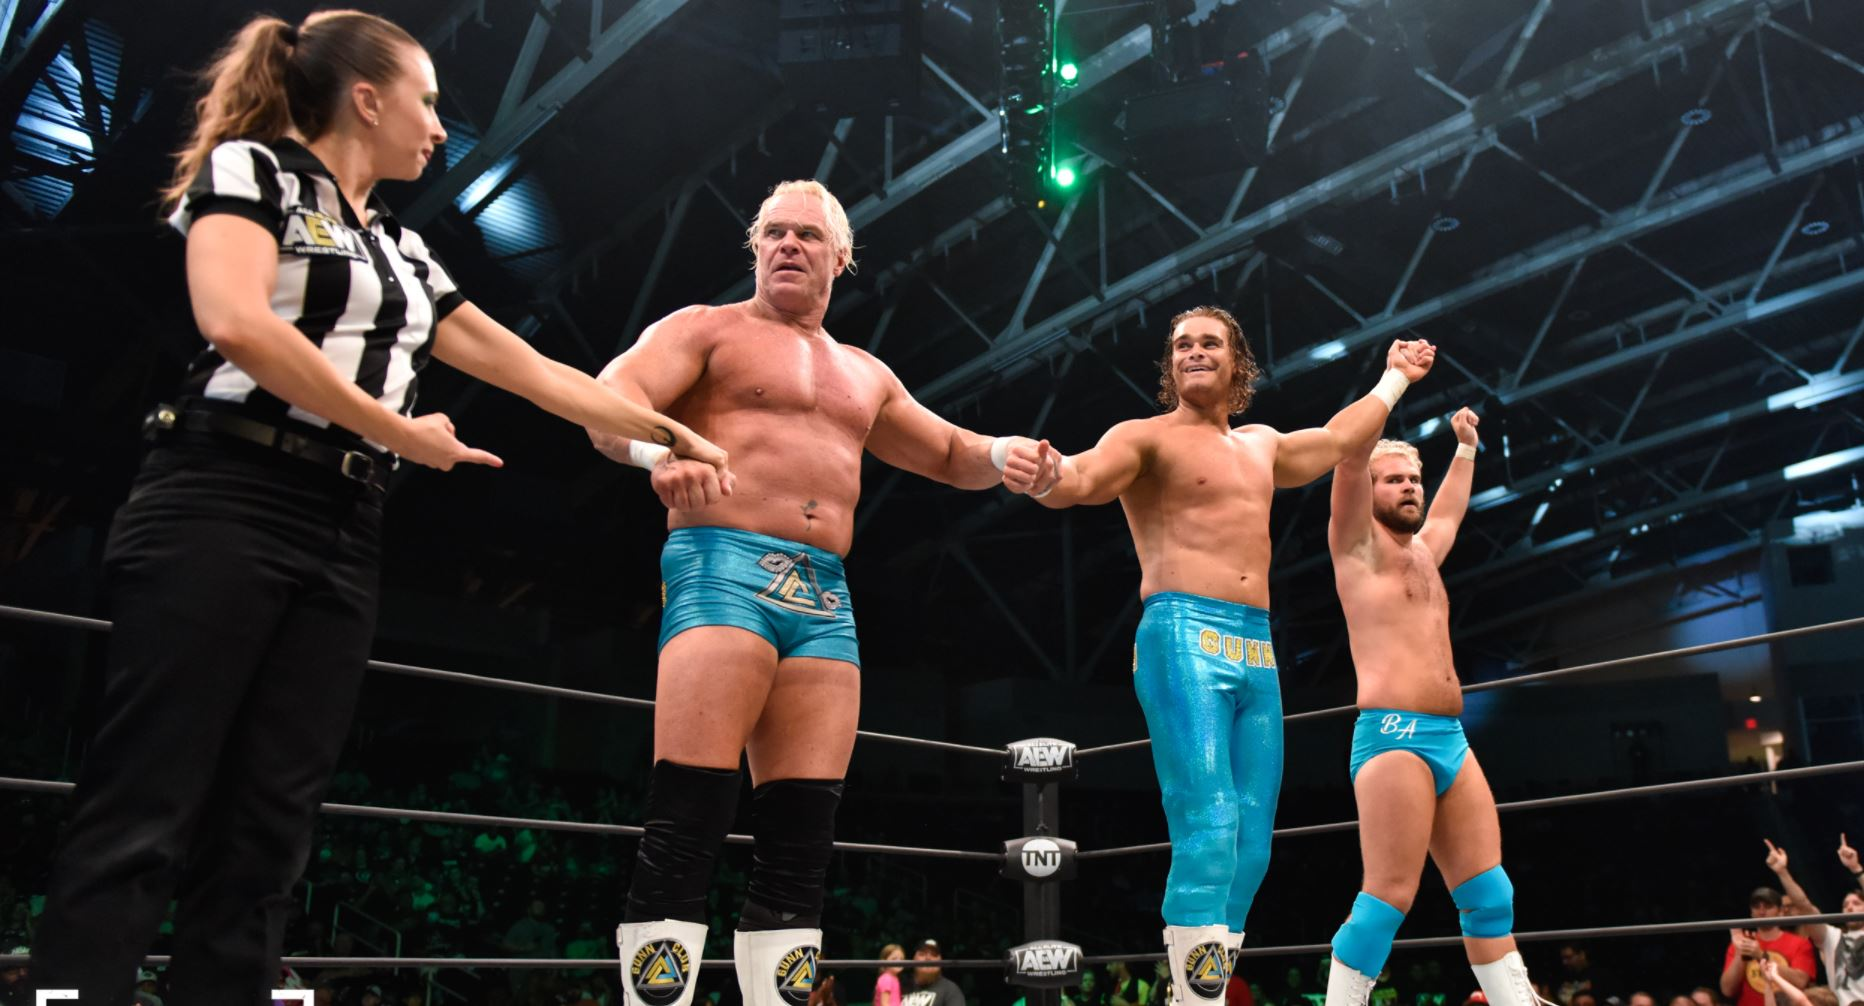 aew has touring concerns